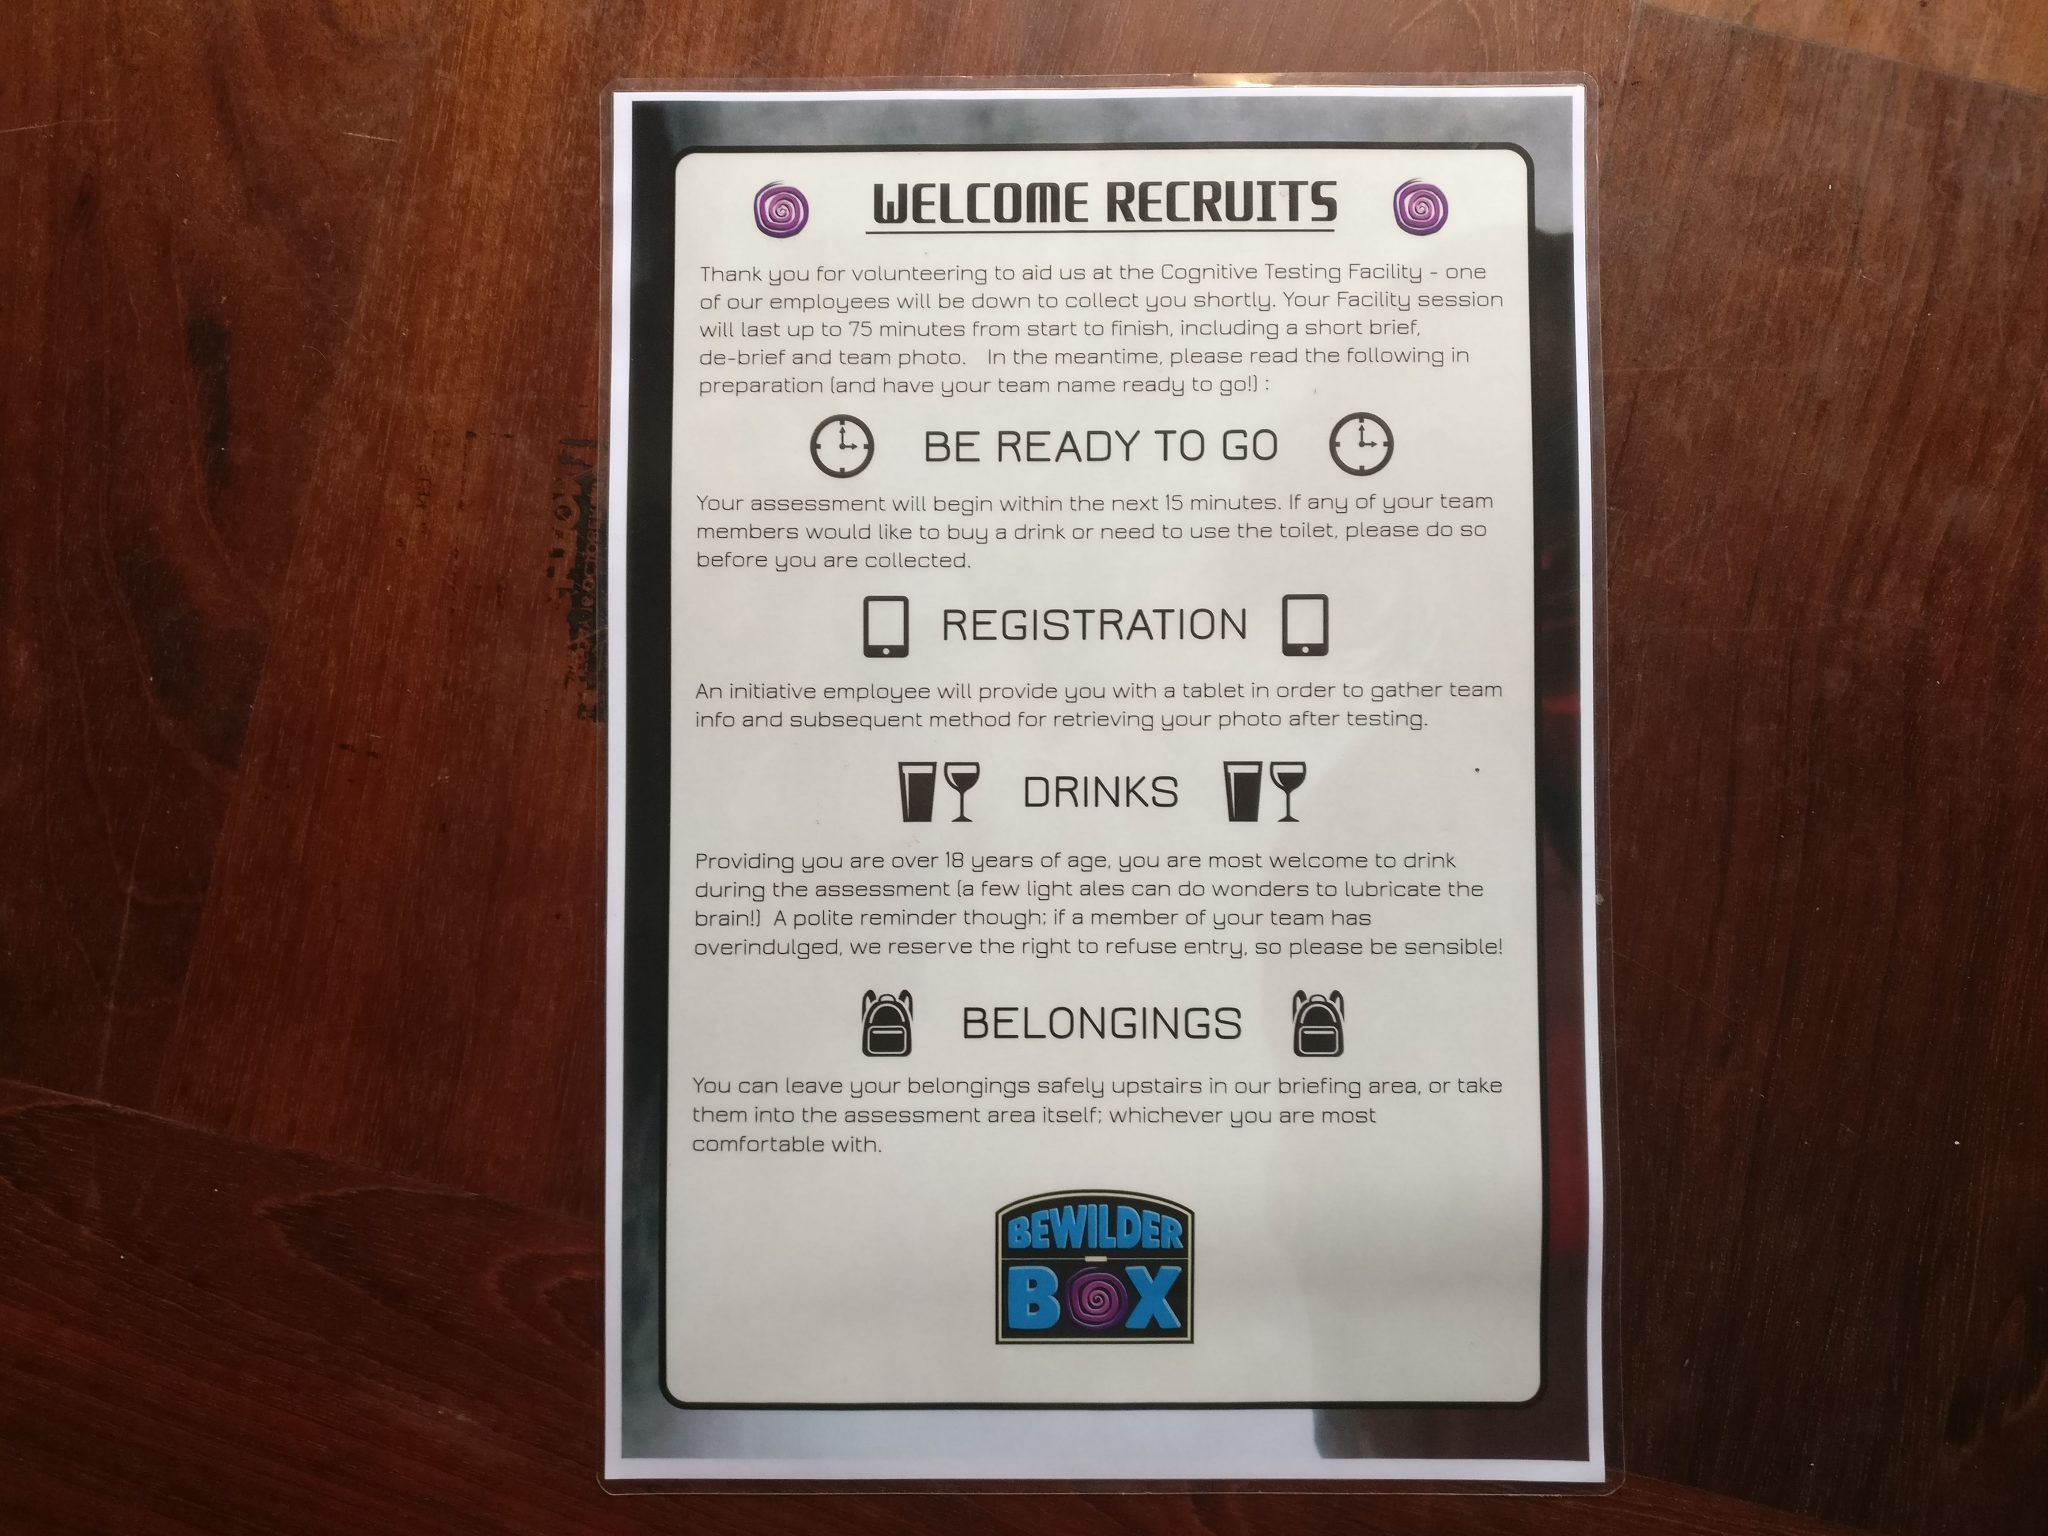 Bewilder Box welcome sheet